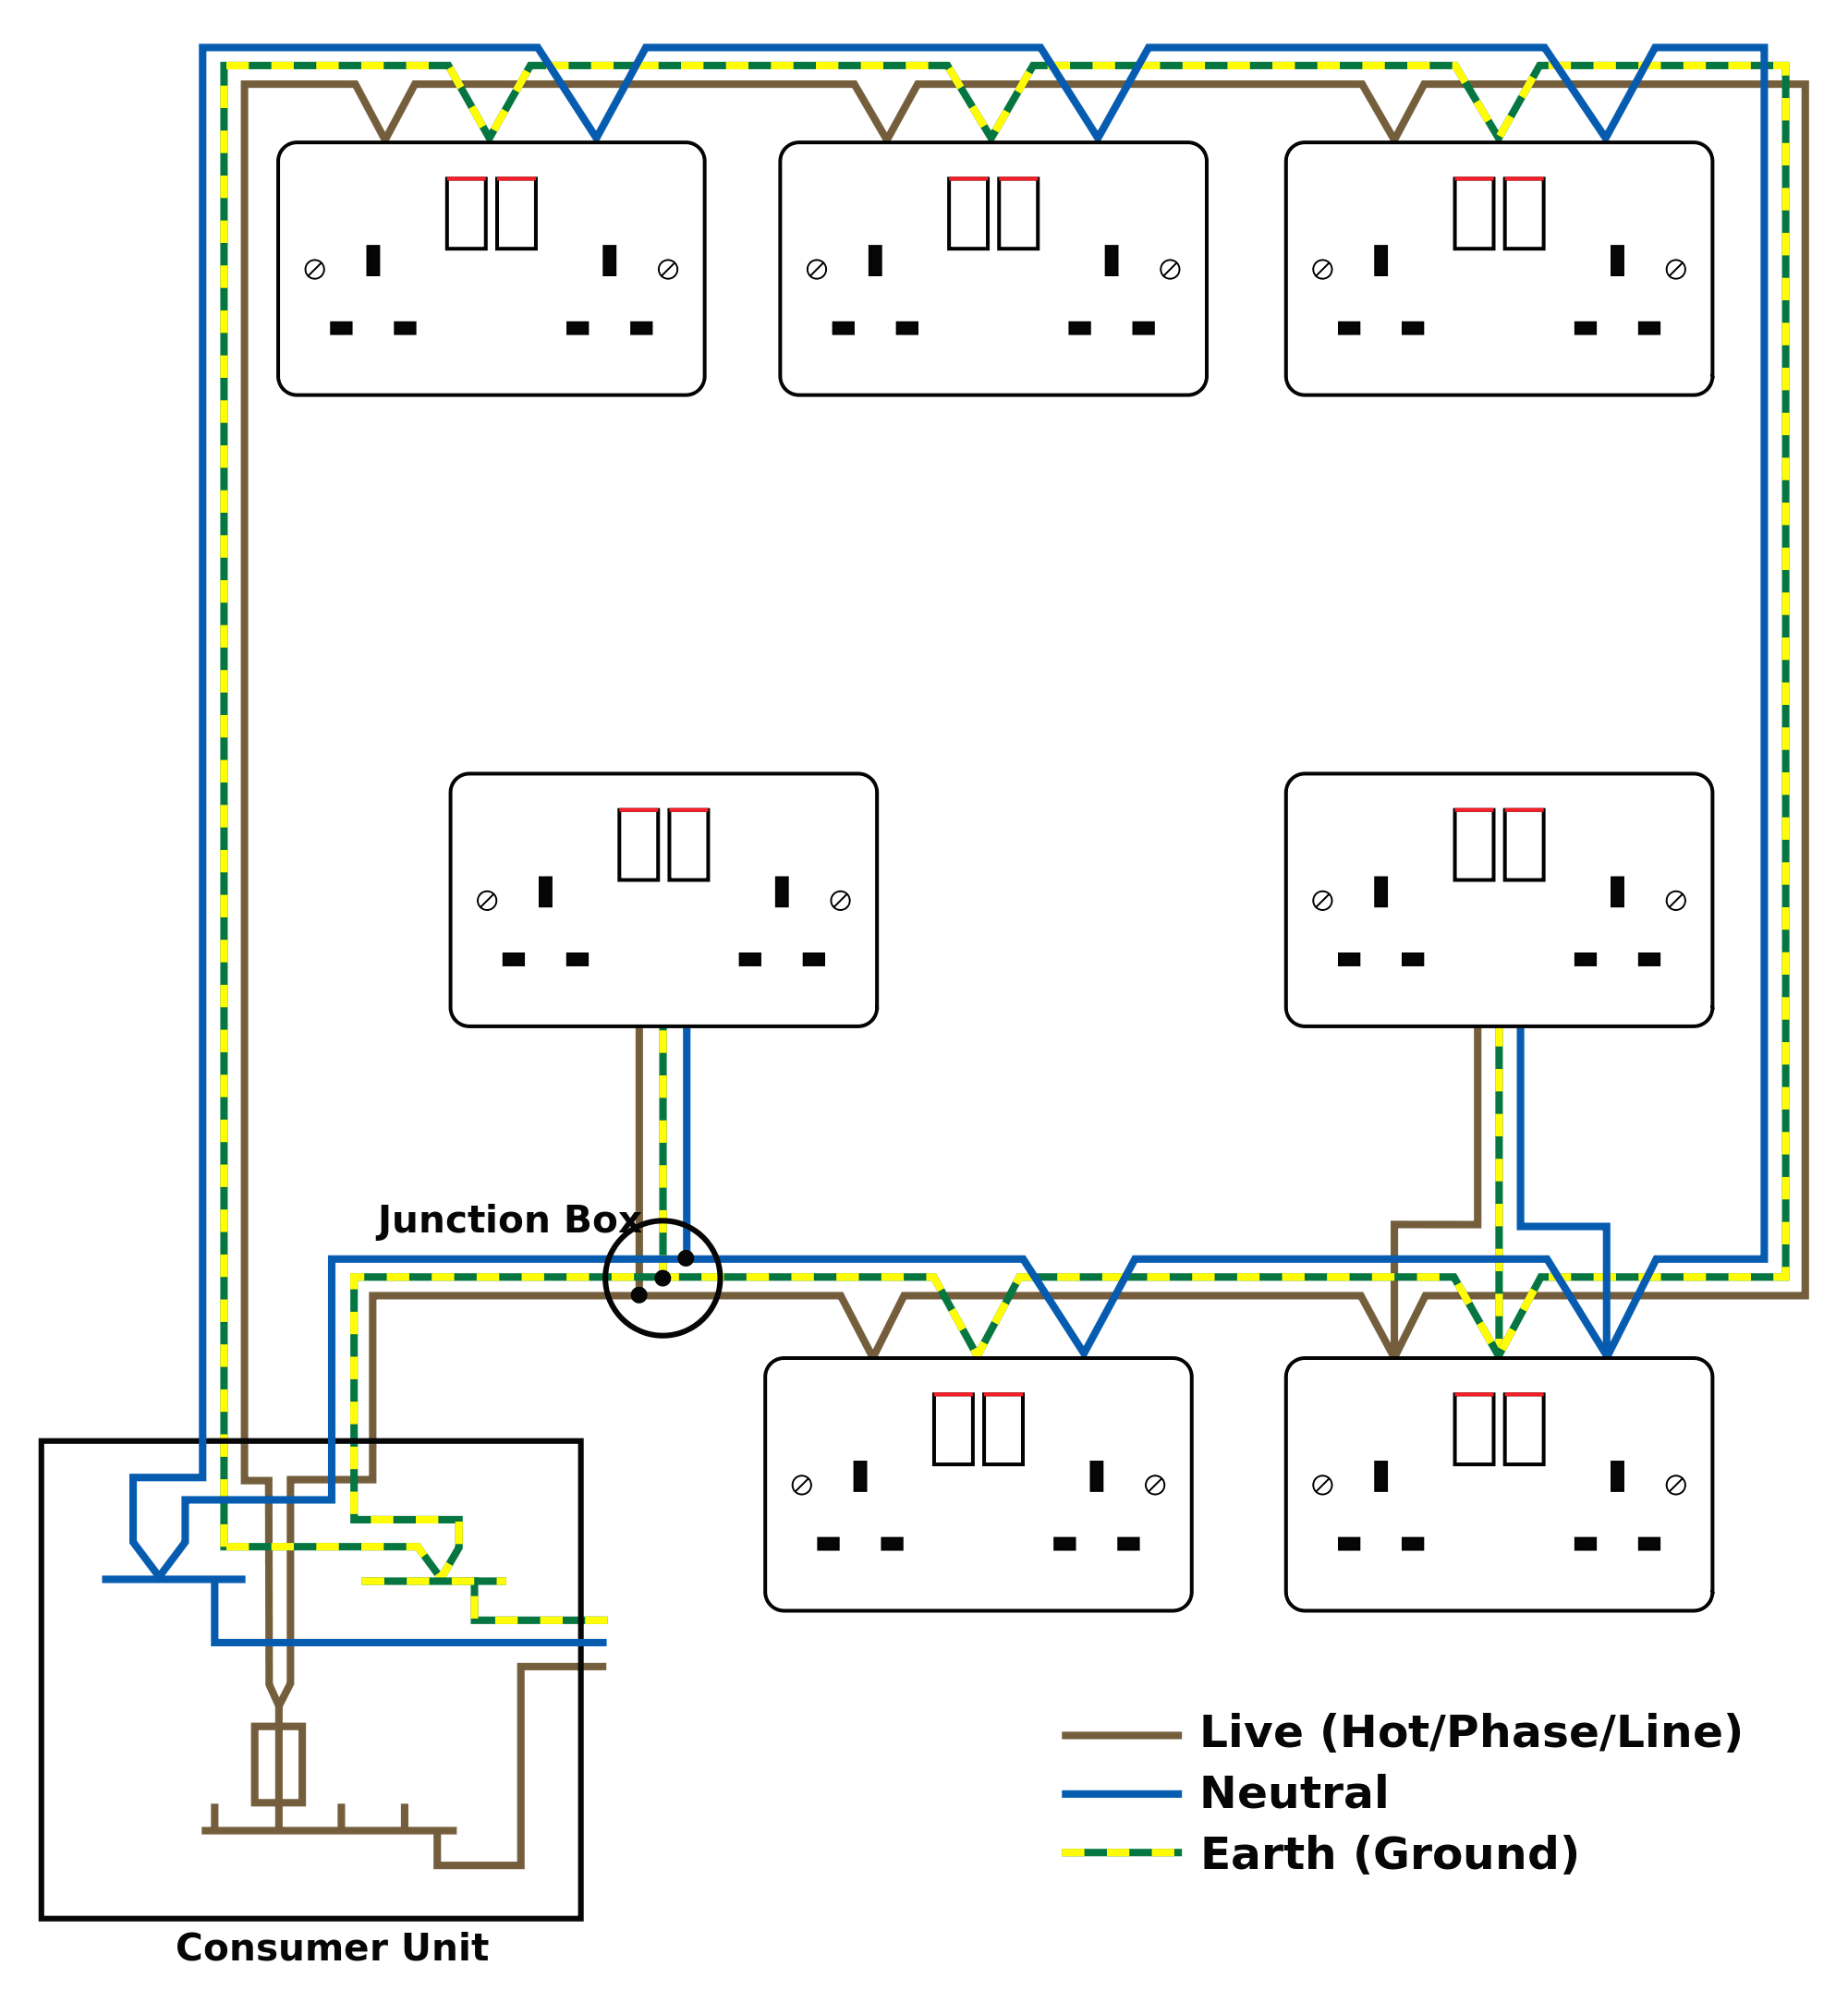 New Wiring Diagram For House Lighting Circuit Pdf Diagram Diagramsample Diagramtemplate Check More At Home Electrical Wiring Residential Wiring House Wiring